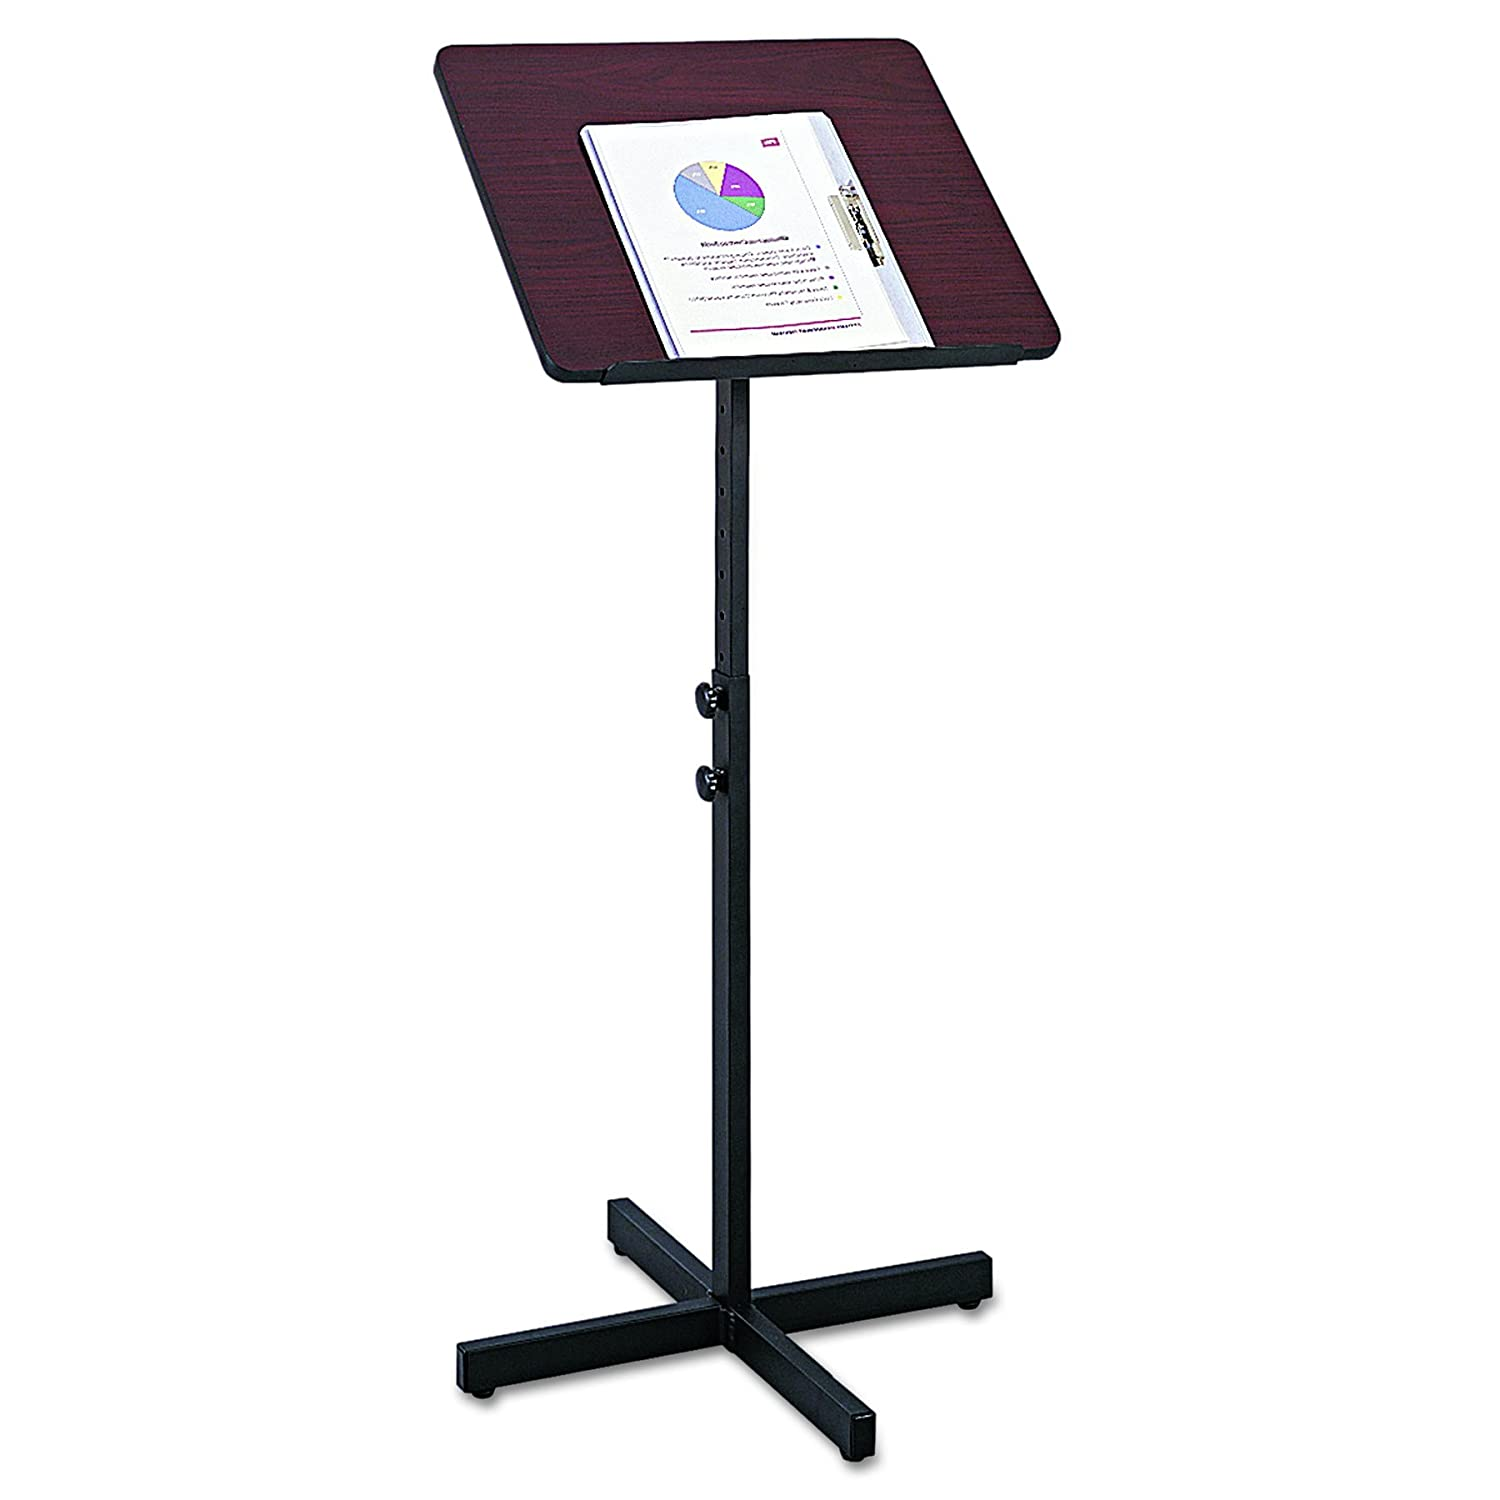 Safco Products Adjustable Speaker Stand Mahogany, 8921MH